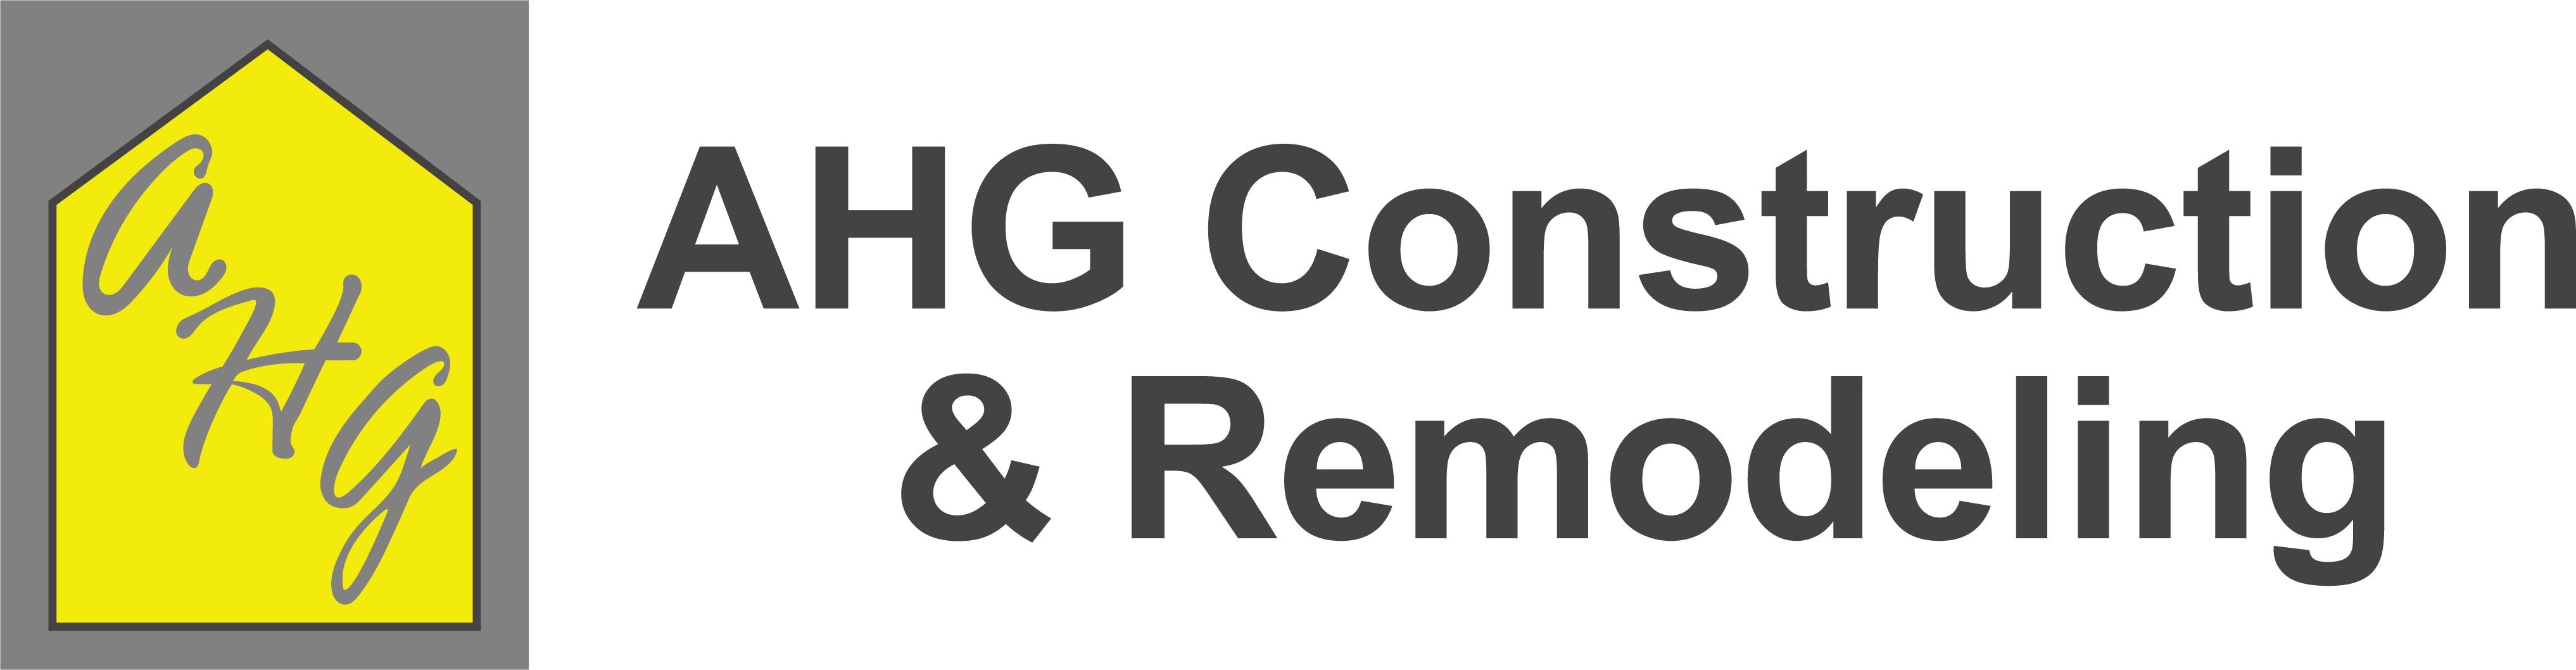 AHG Construction & Remodeling